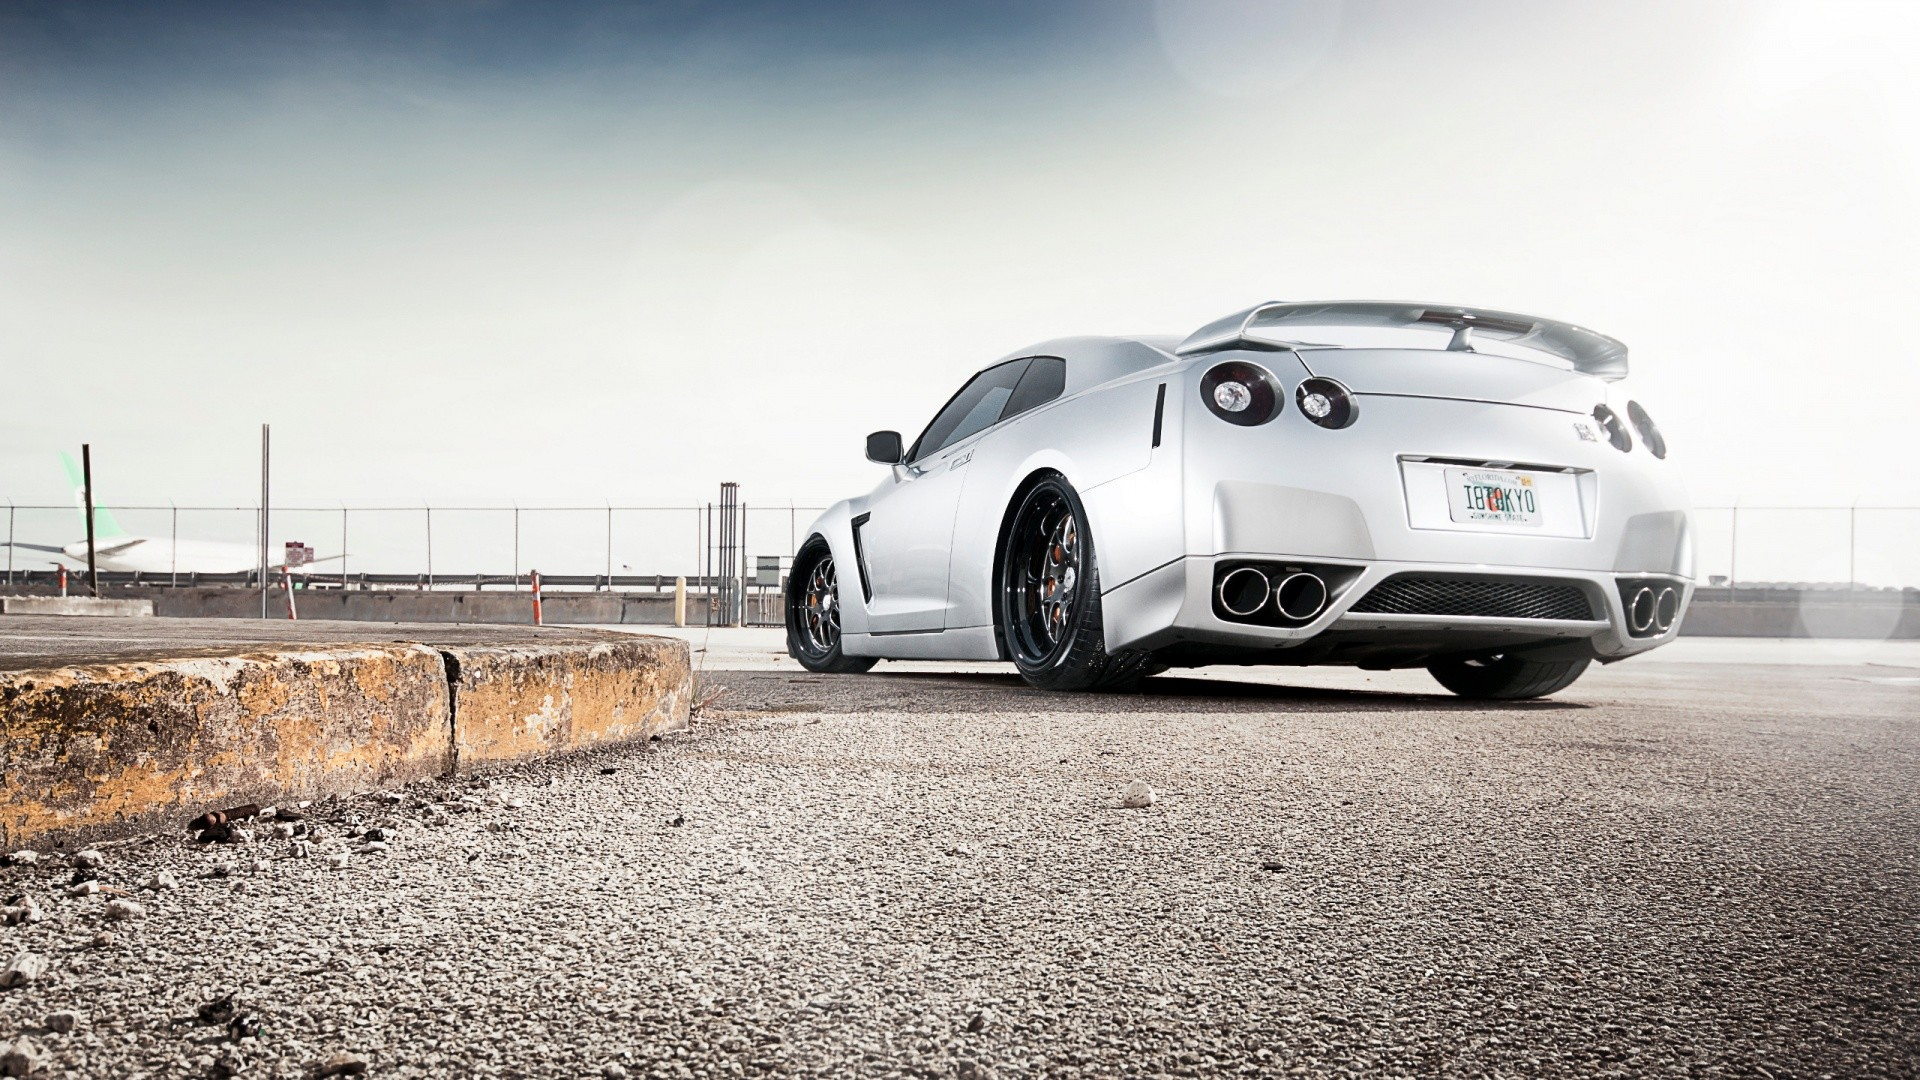 nissan gtr r35 wallpapers free download | ololoshka | Pinterest | Wallpaper  free download and Wallpaper